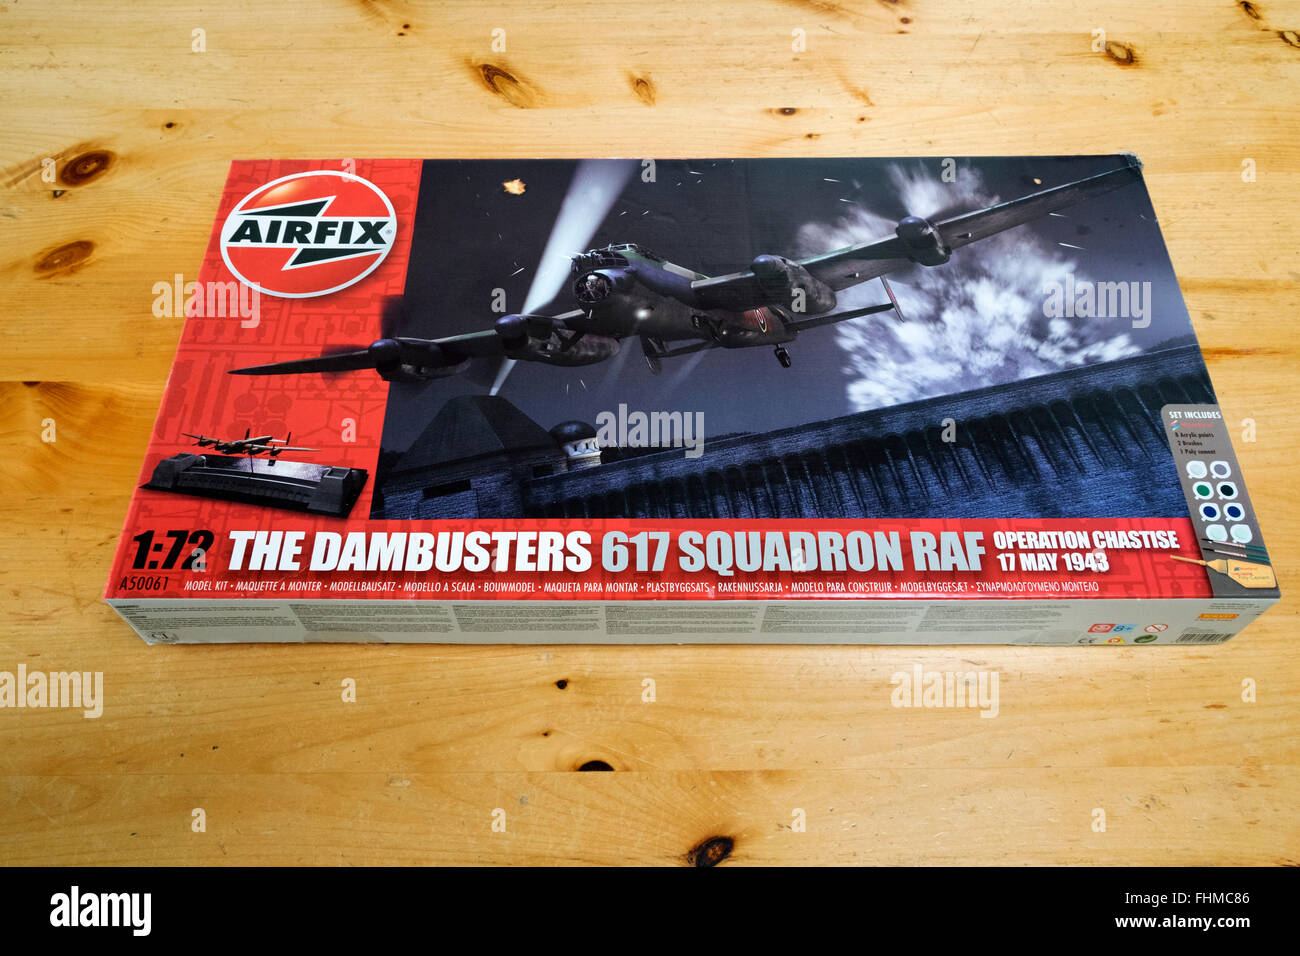 Airfix 1:72 scale model of a Lancaster heavy bomber of the Dambusters 617 Squadron - Stock Image